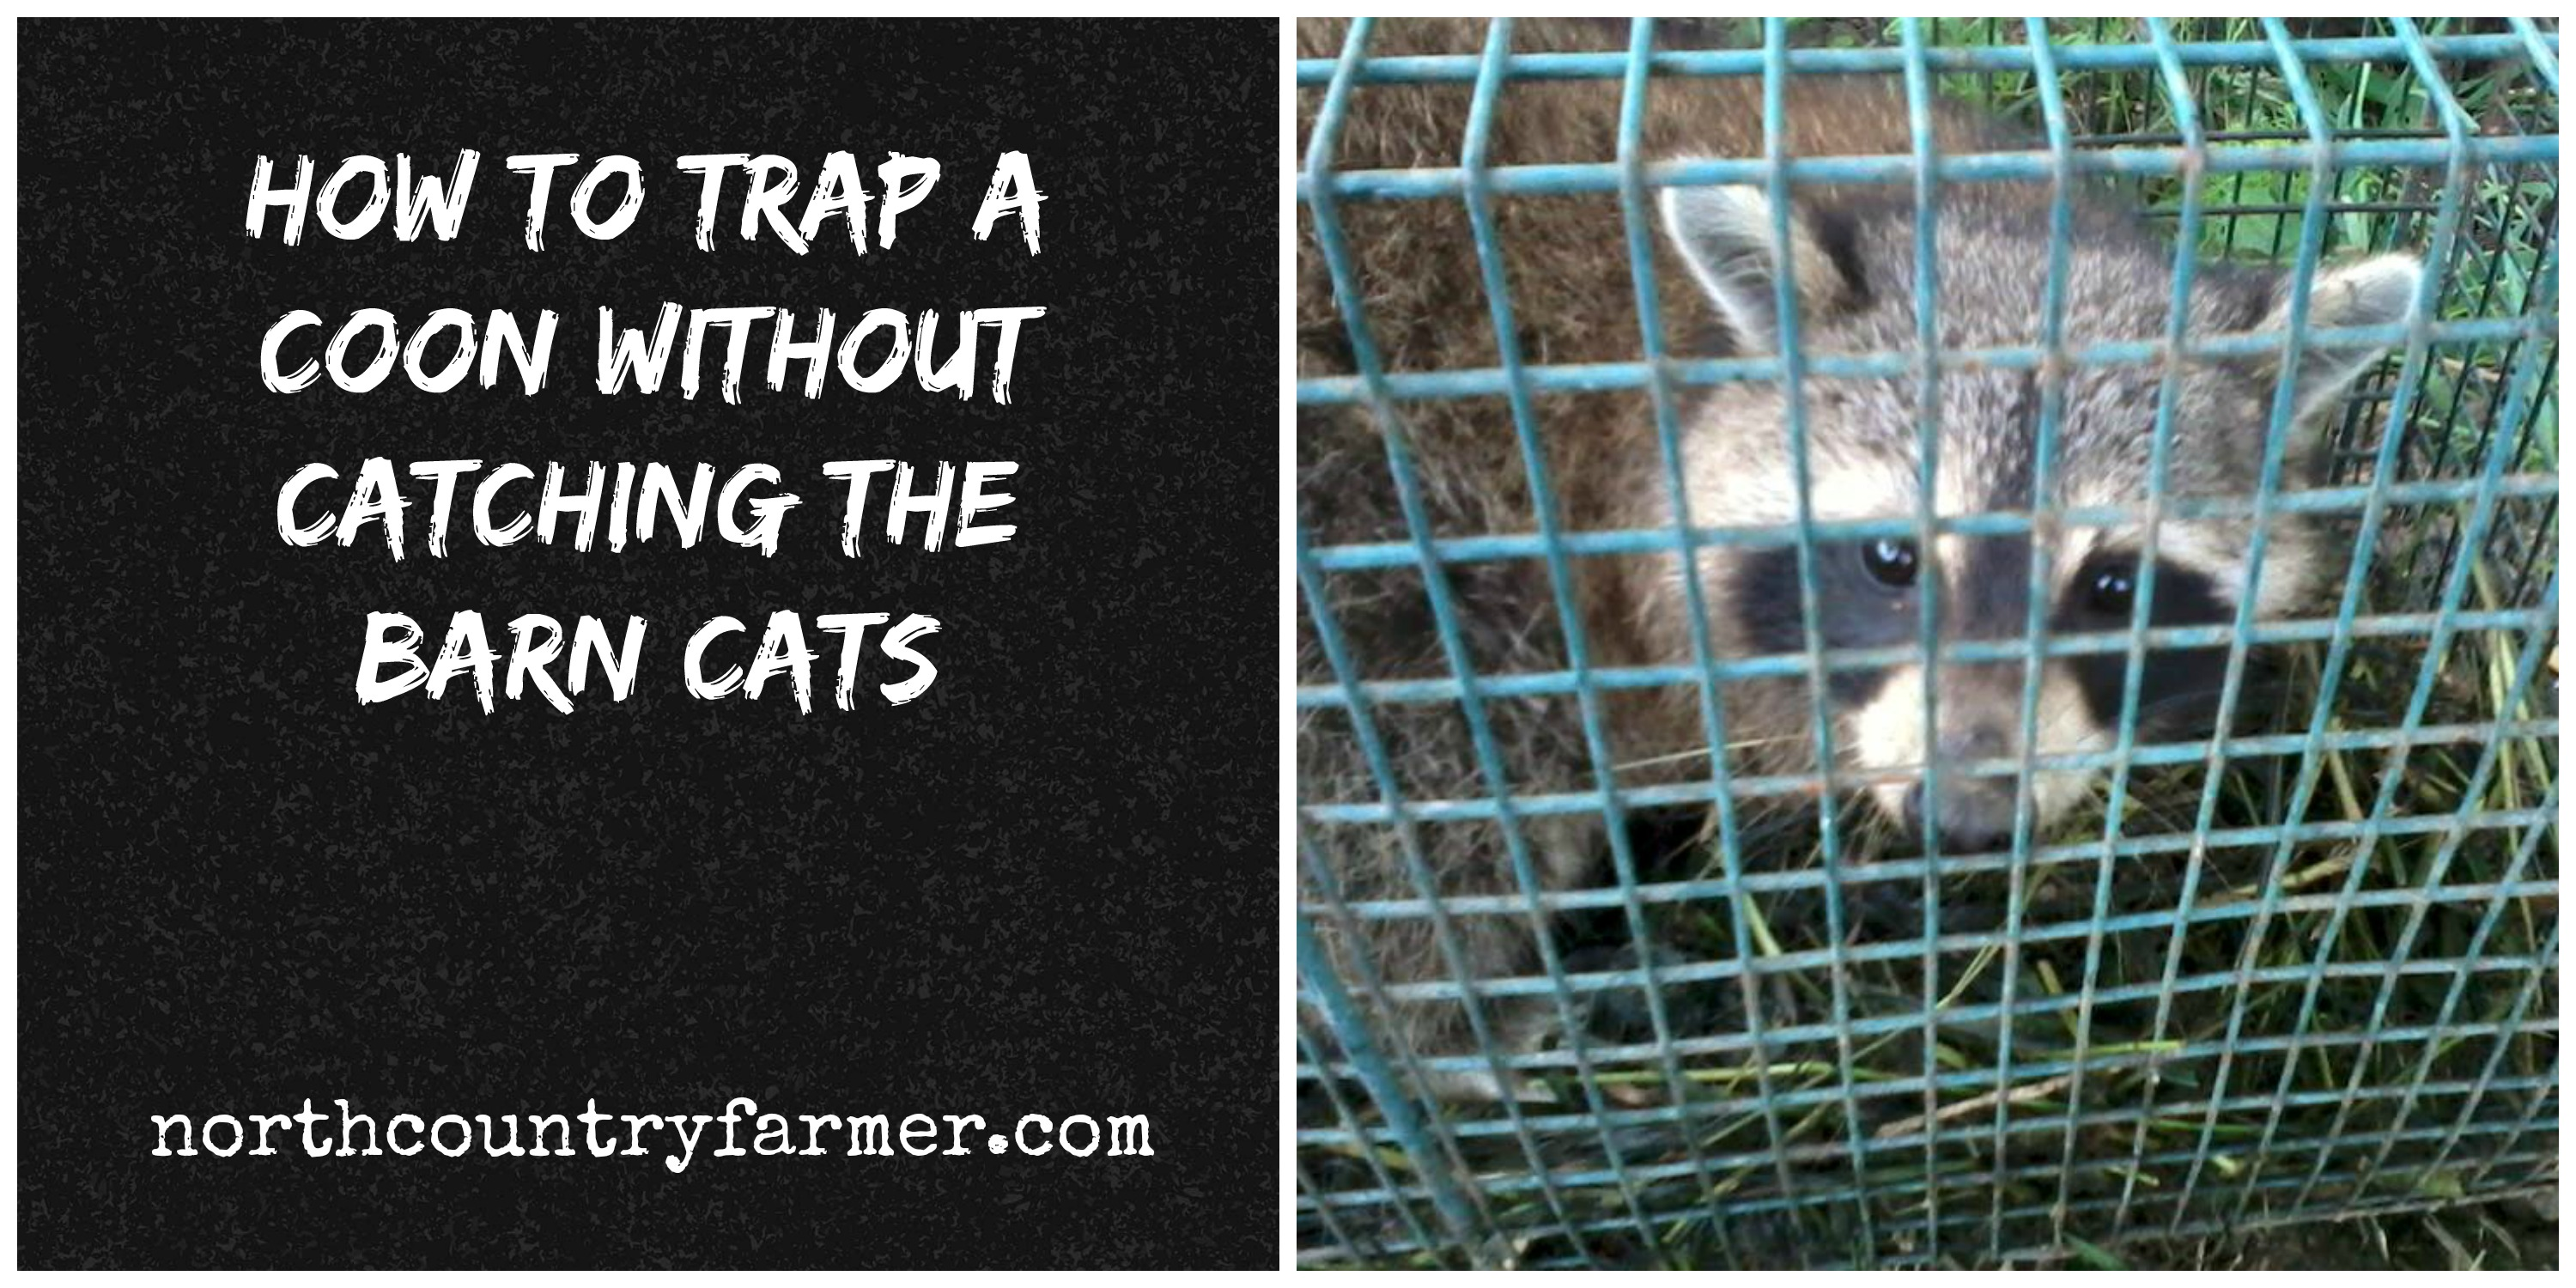 How To Trap A Coon Without Catching The Barn Cats